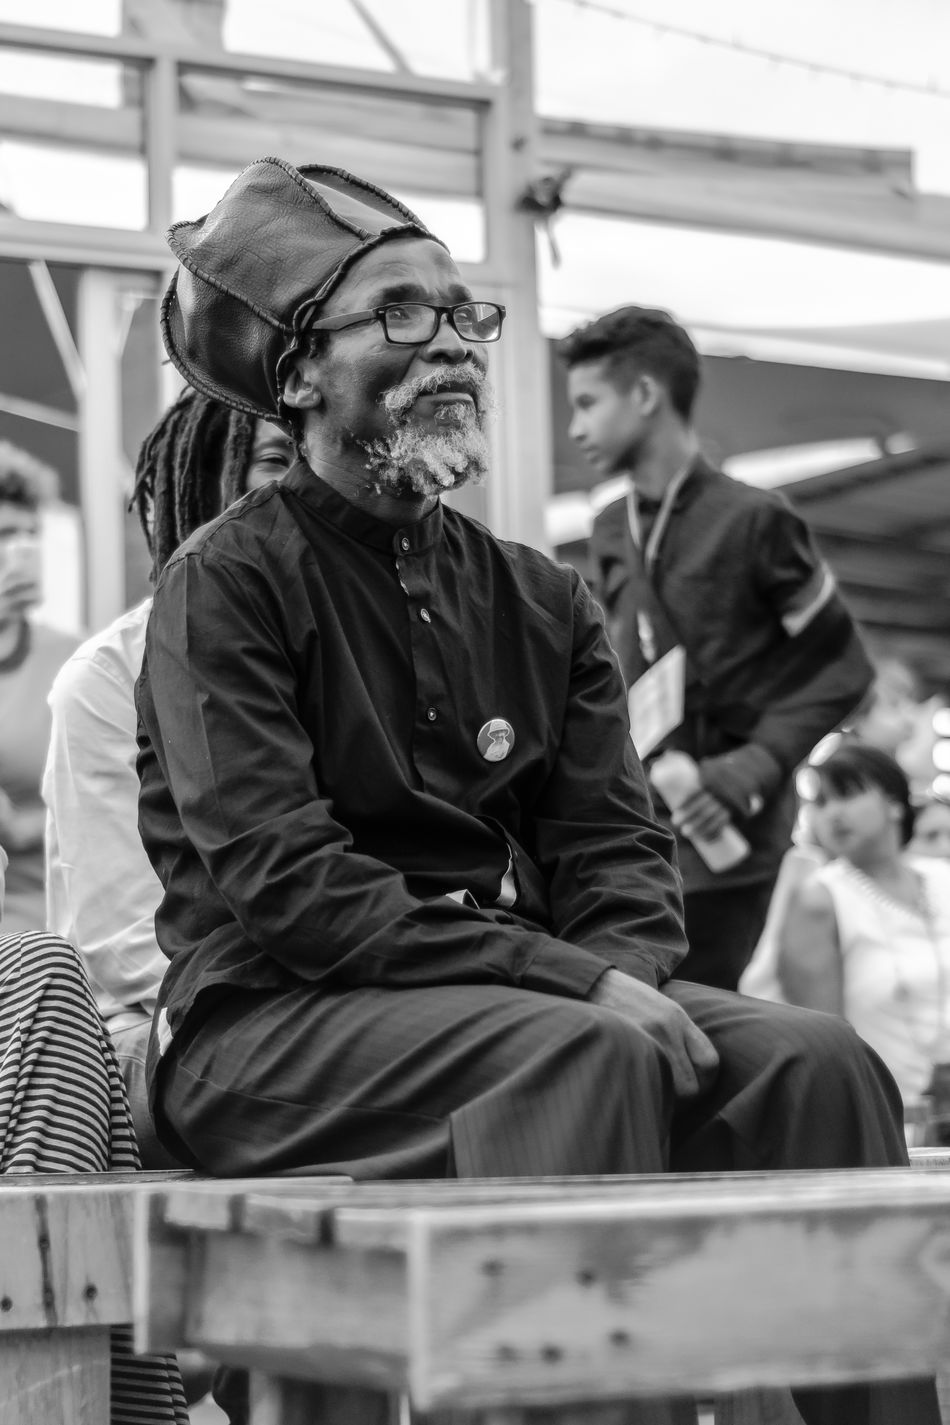 Old man watching concert Adult Beard Best EyeEm Shot Black & White Black And White Black And White Photography Blackandwhite Day Glasses Indoor Indoors  Men Old Man Old Man Portrait People RASTA Rasta Hat Rasta Man Rastafari Rastafarian Rastaman Real People Sitting Watching Week On Eyeem